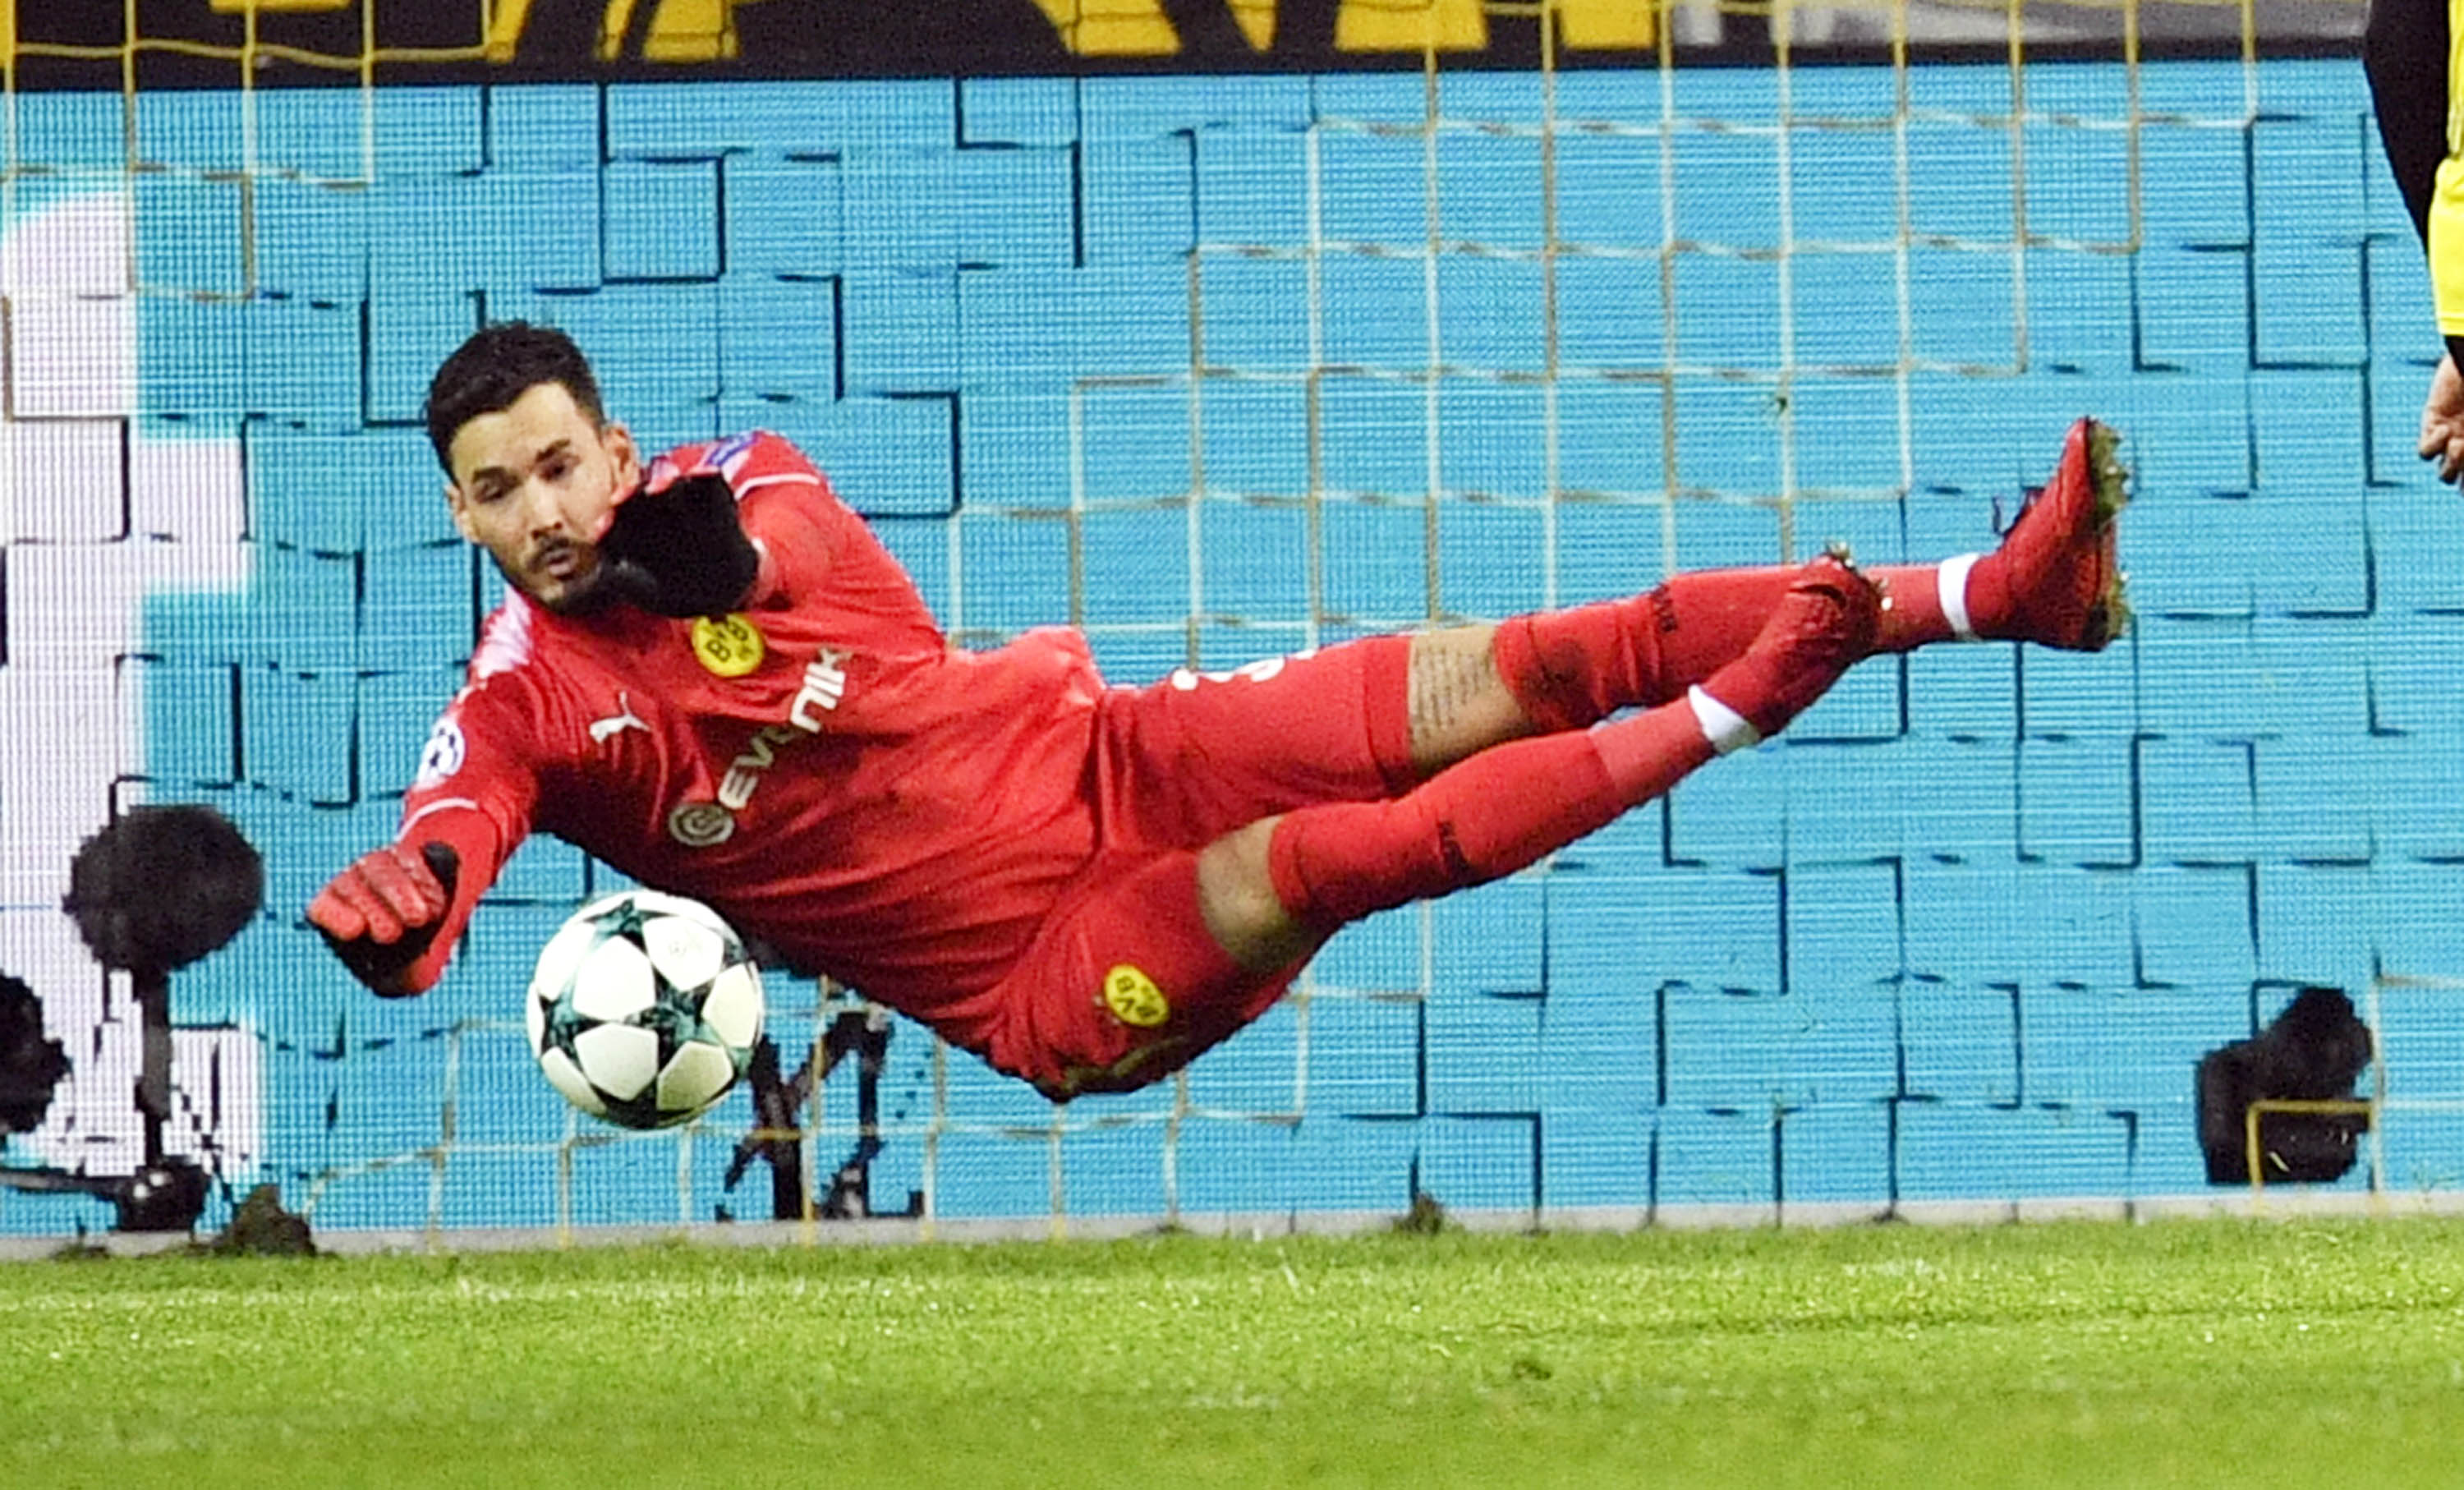 Dortmund goalkeeper Roman Buerki makes a save during the soccer Champions League group H match between Borussia Dortmund and Tottenham Hotspur in Dortmund, Germany on Tuesday.